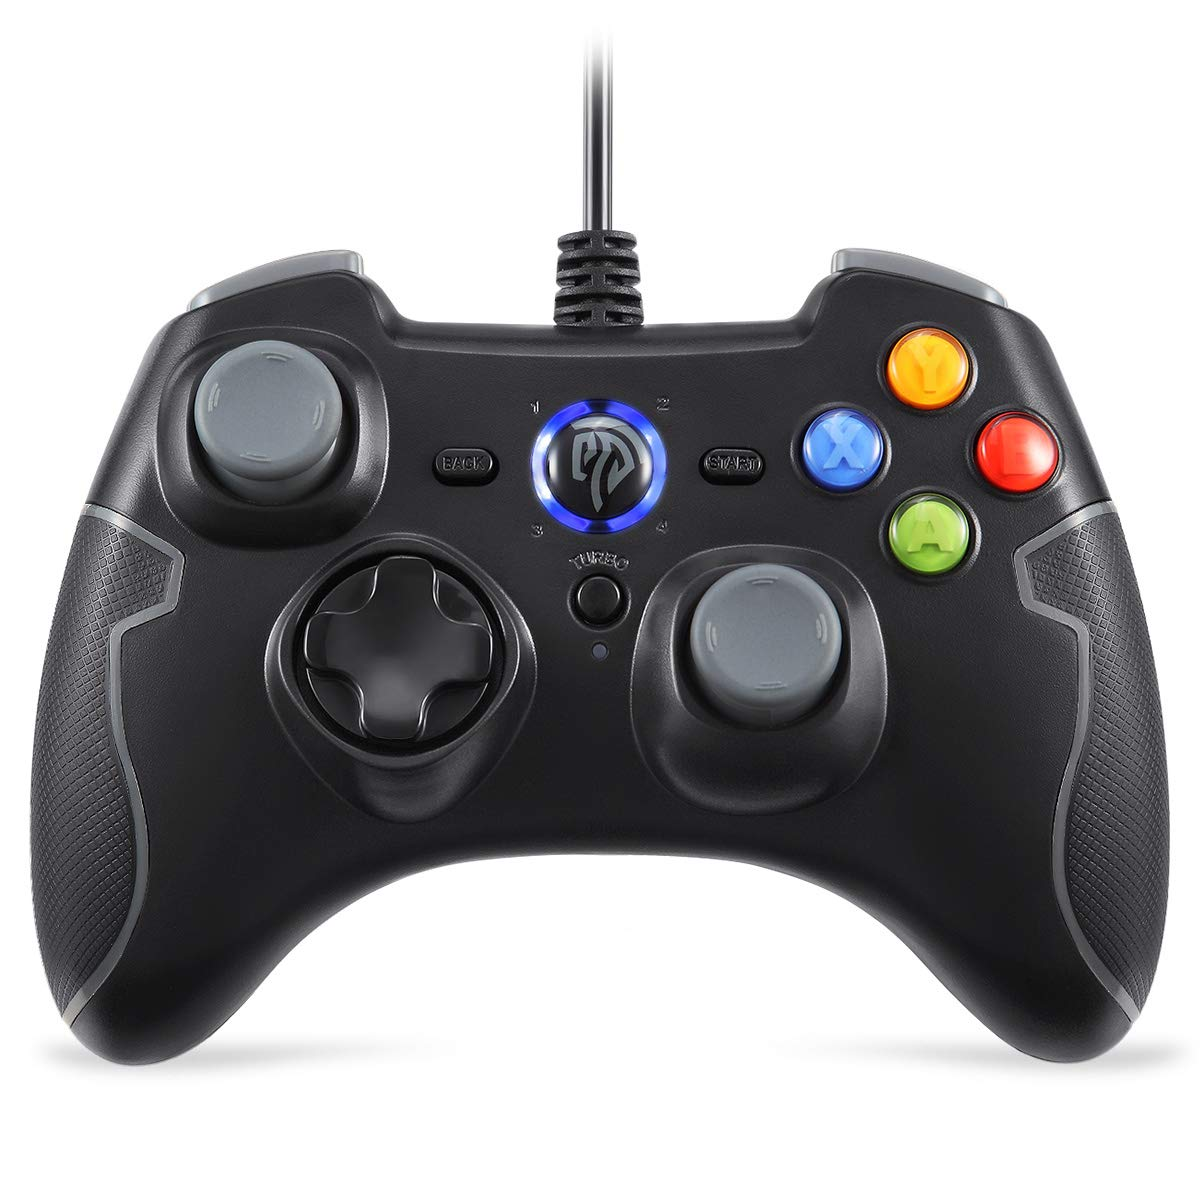 Amazon.com: EasySMX Wired Gaming Controller, PC Game Controller ...